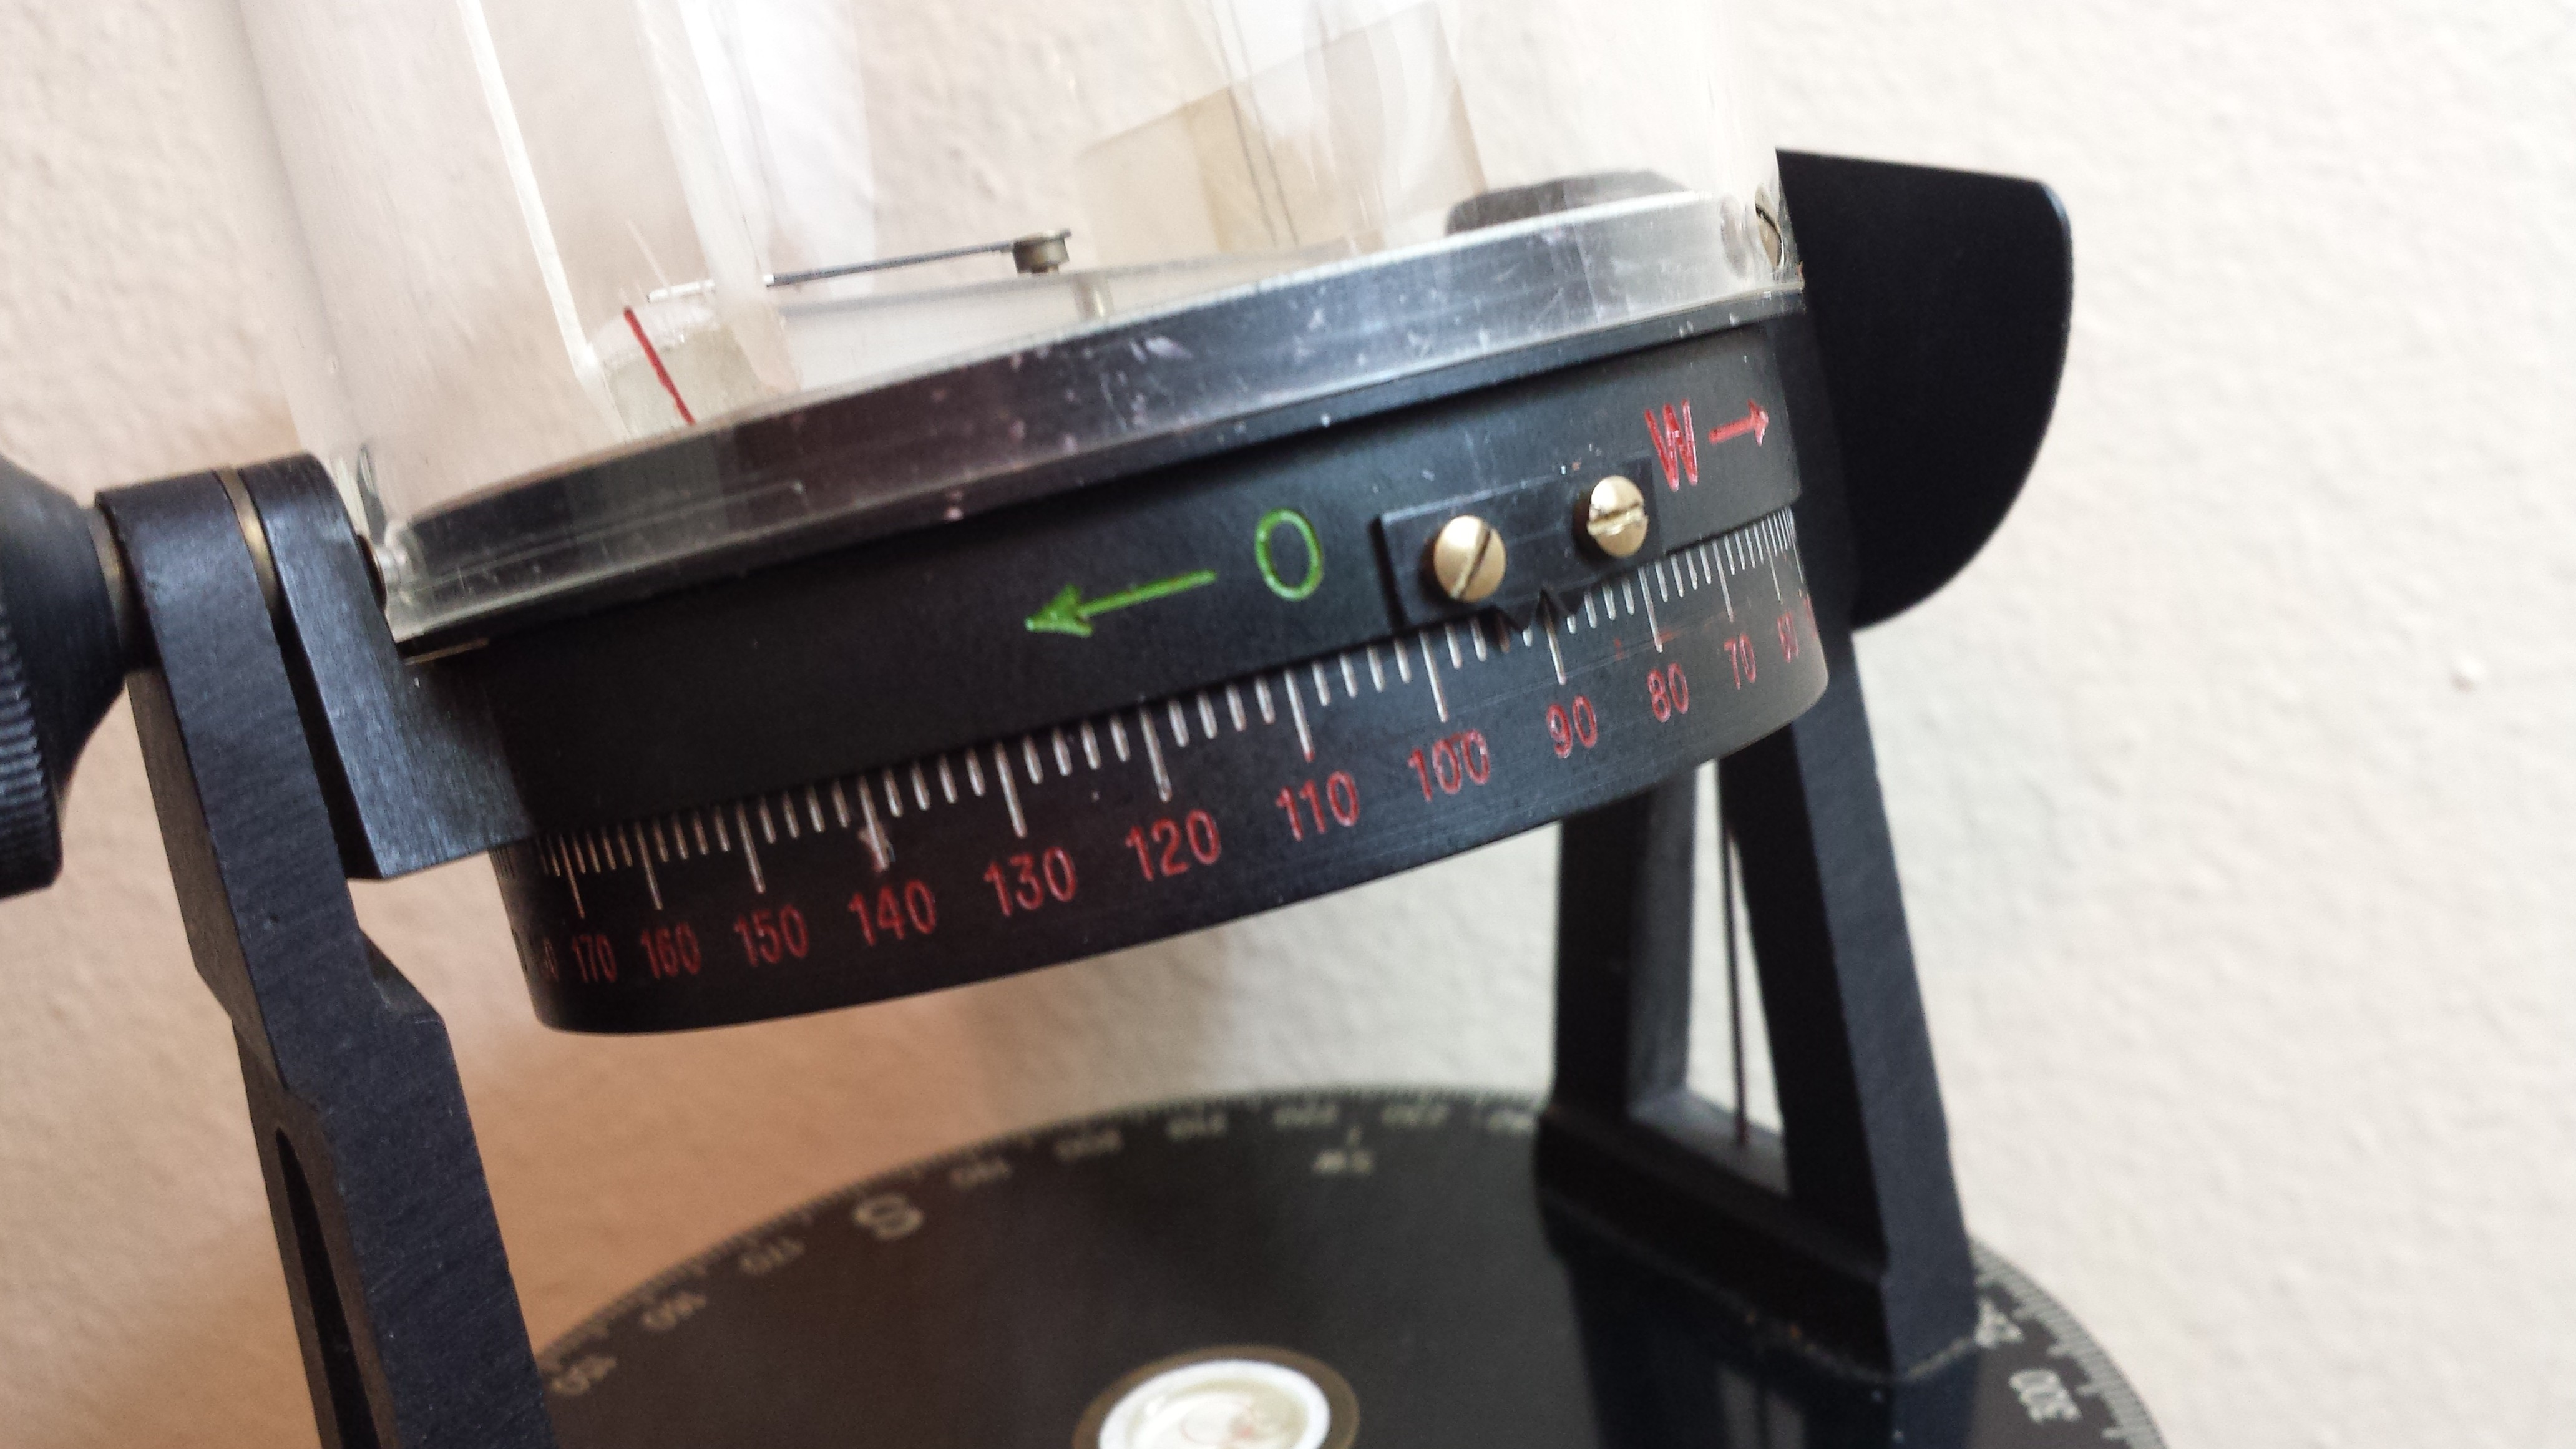 Figure 4: Equatorial mounting ring and longitude scale.